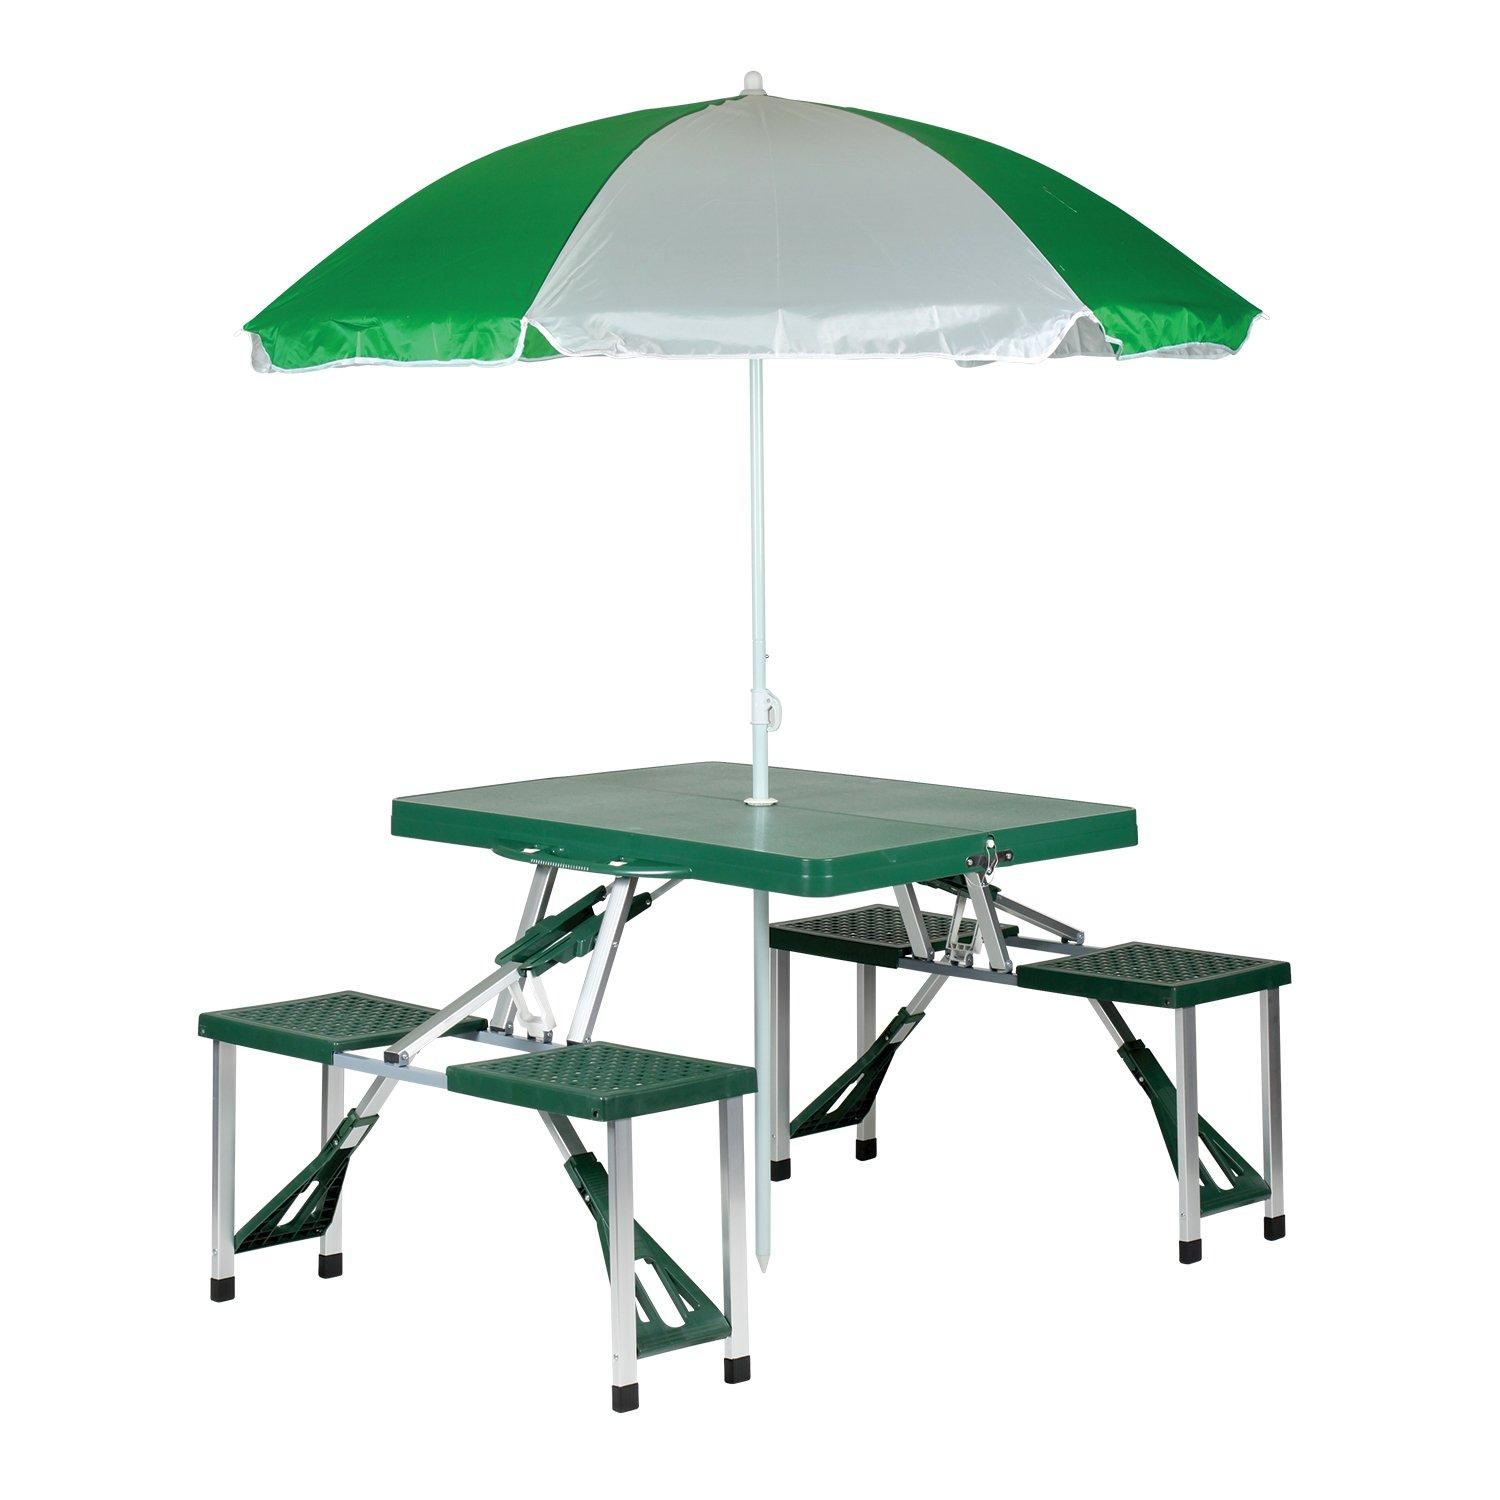 Stansport 615 picnic table and umbrella combo for Table umbrella